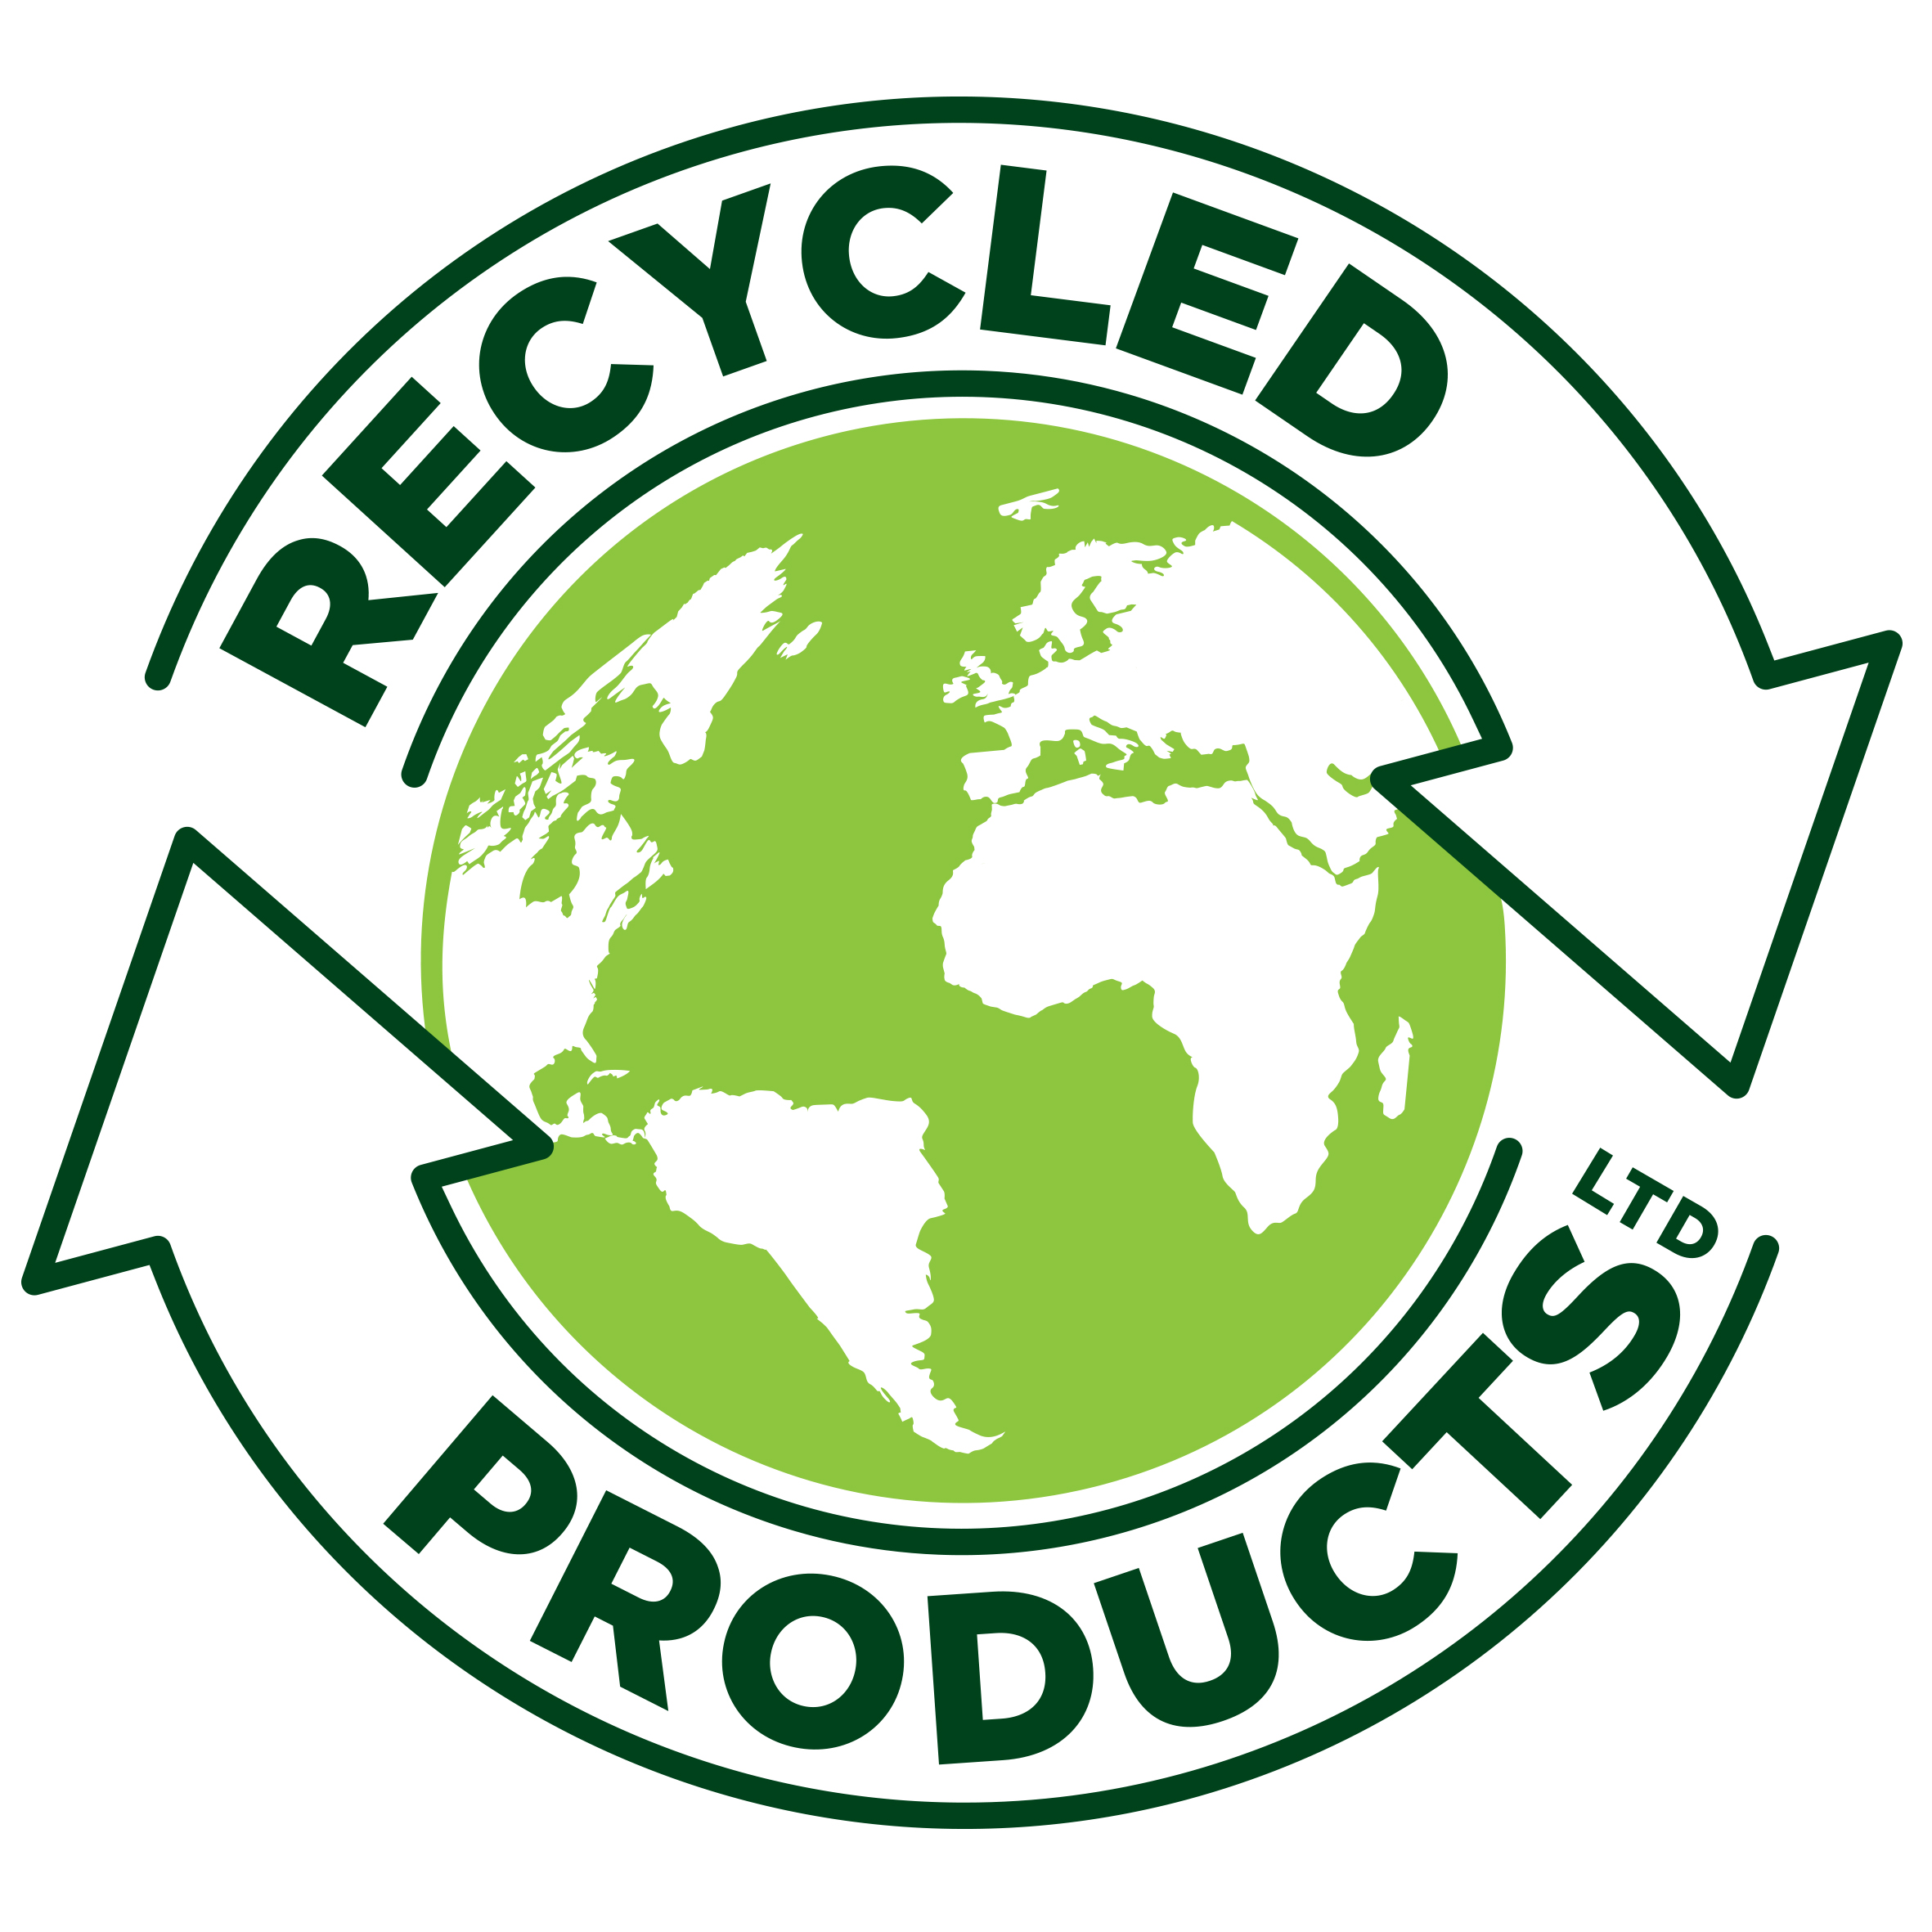 Linked logo for Recycled Products Ltd